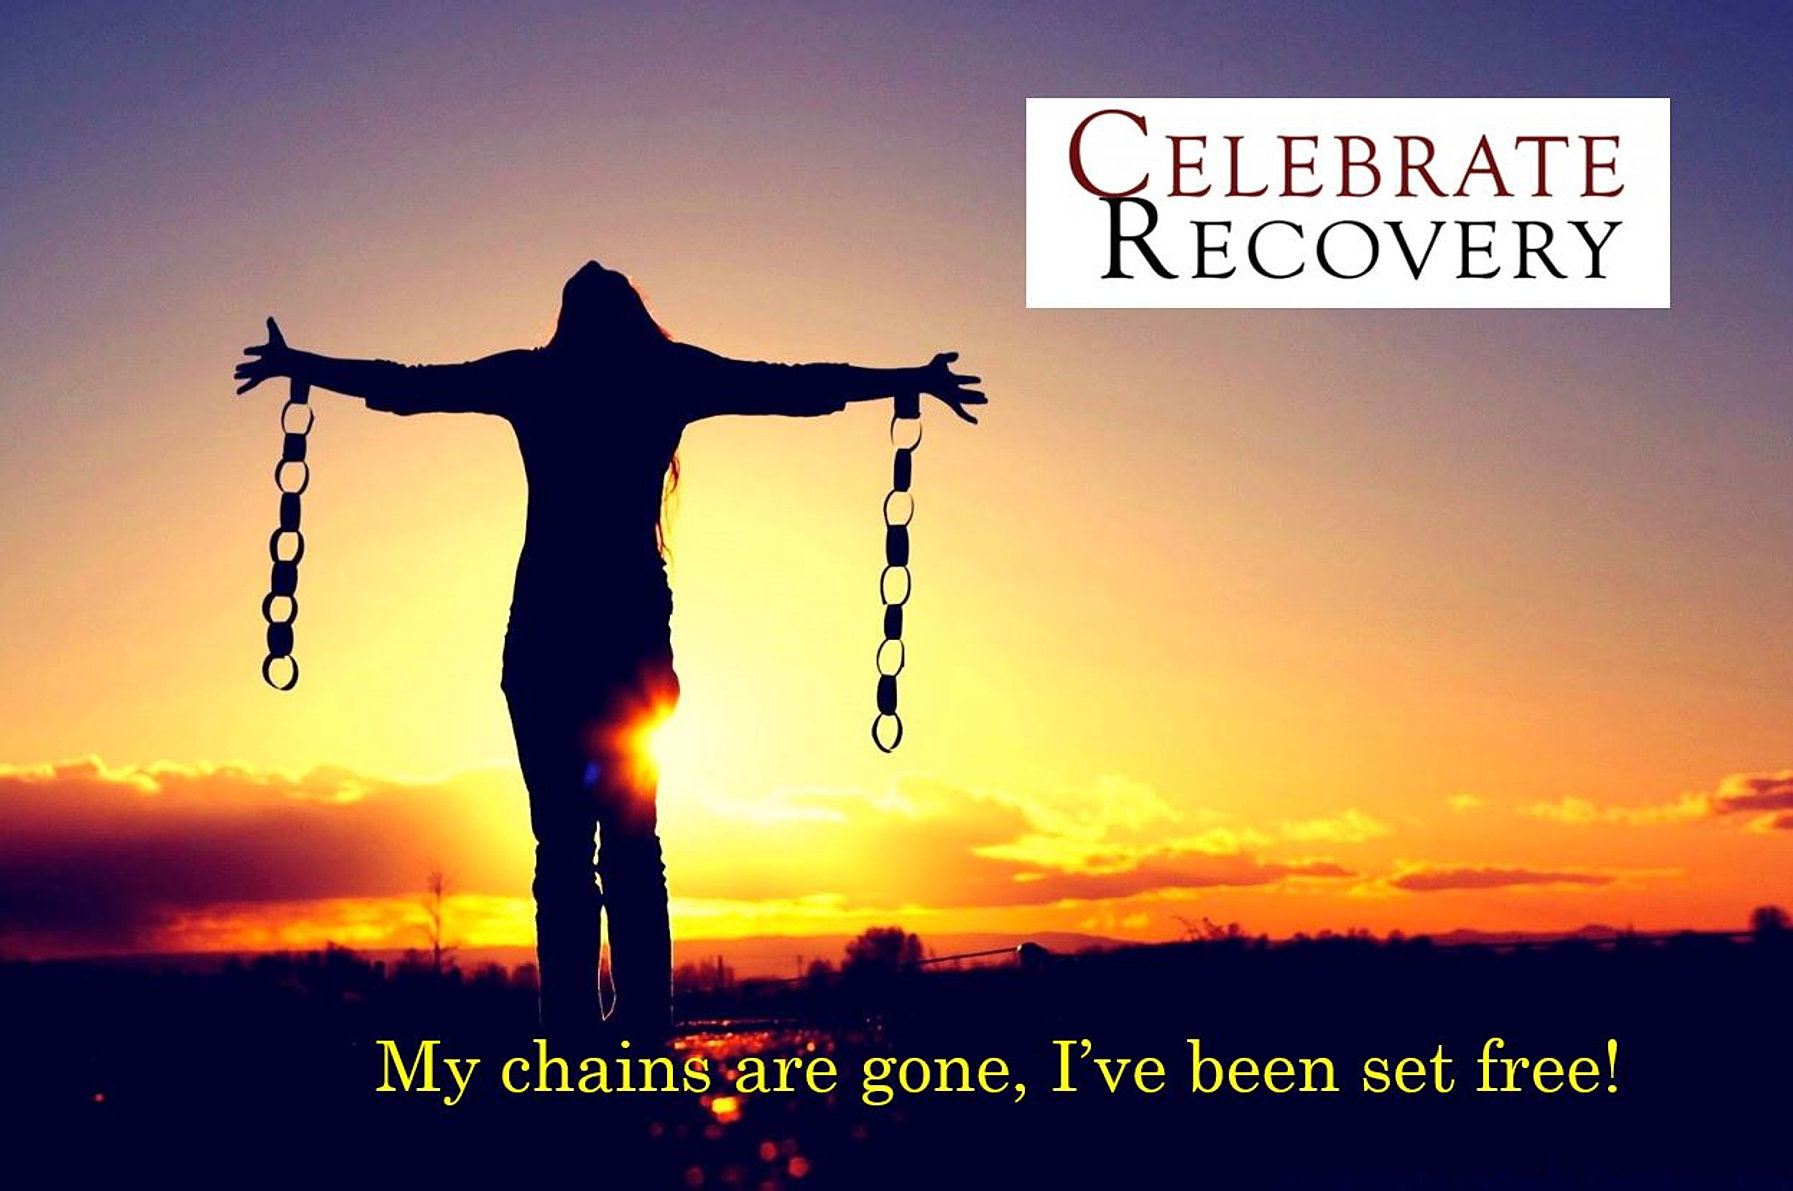 celebrate-recovery_1